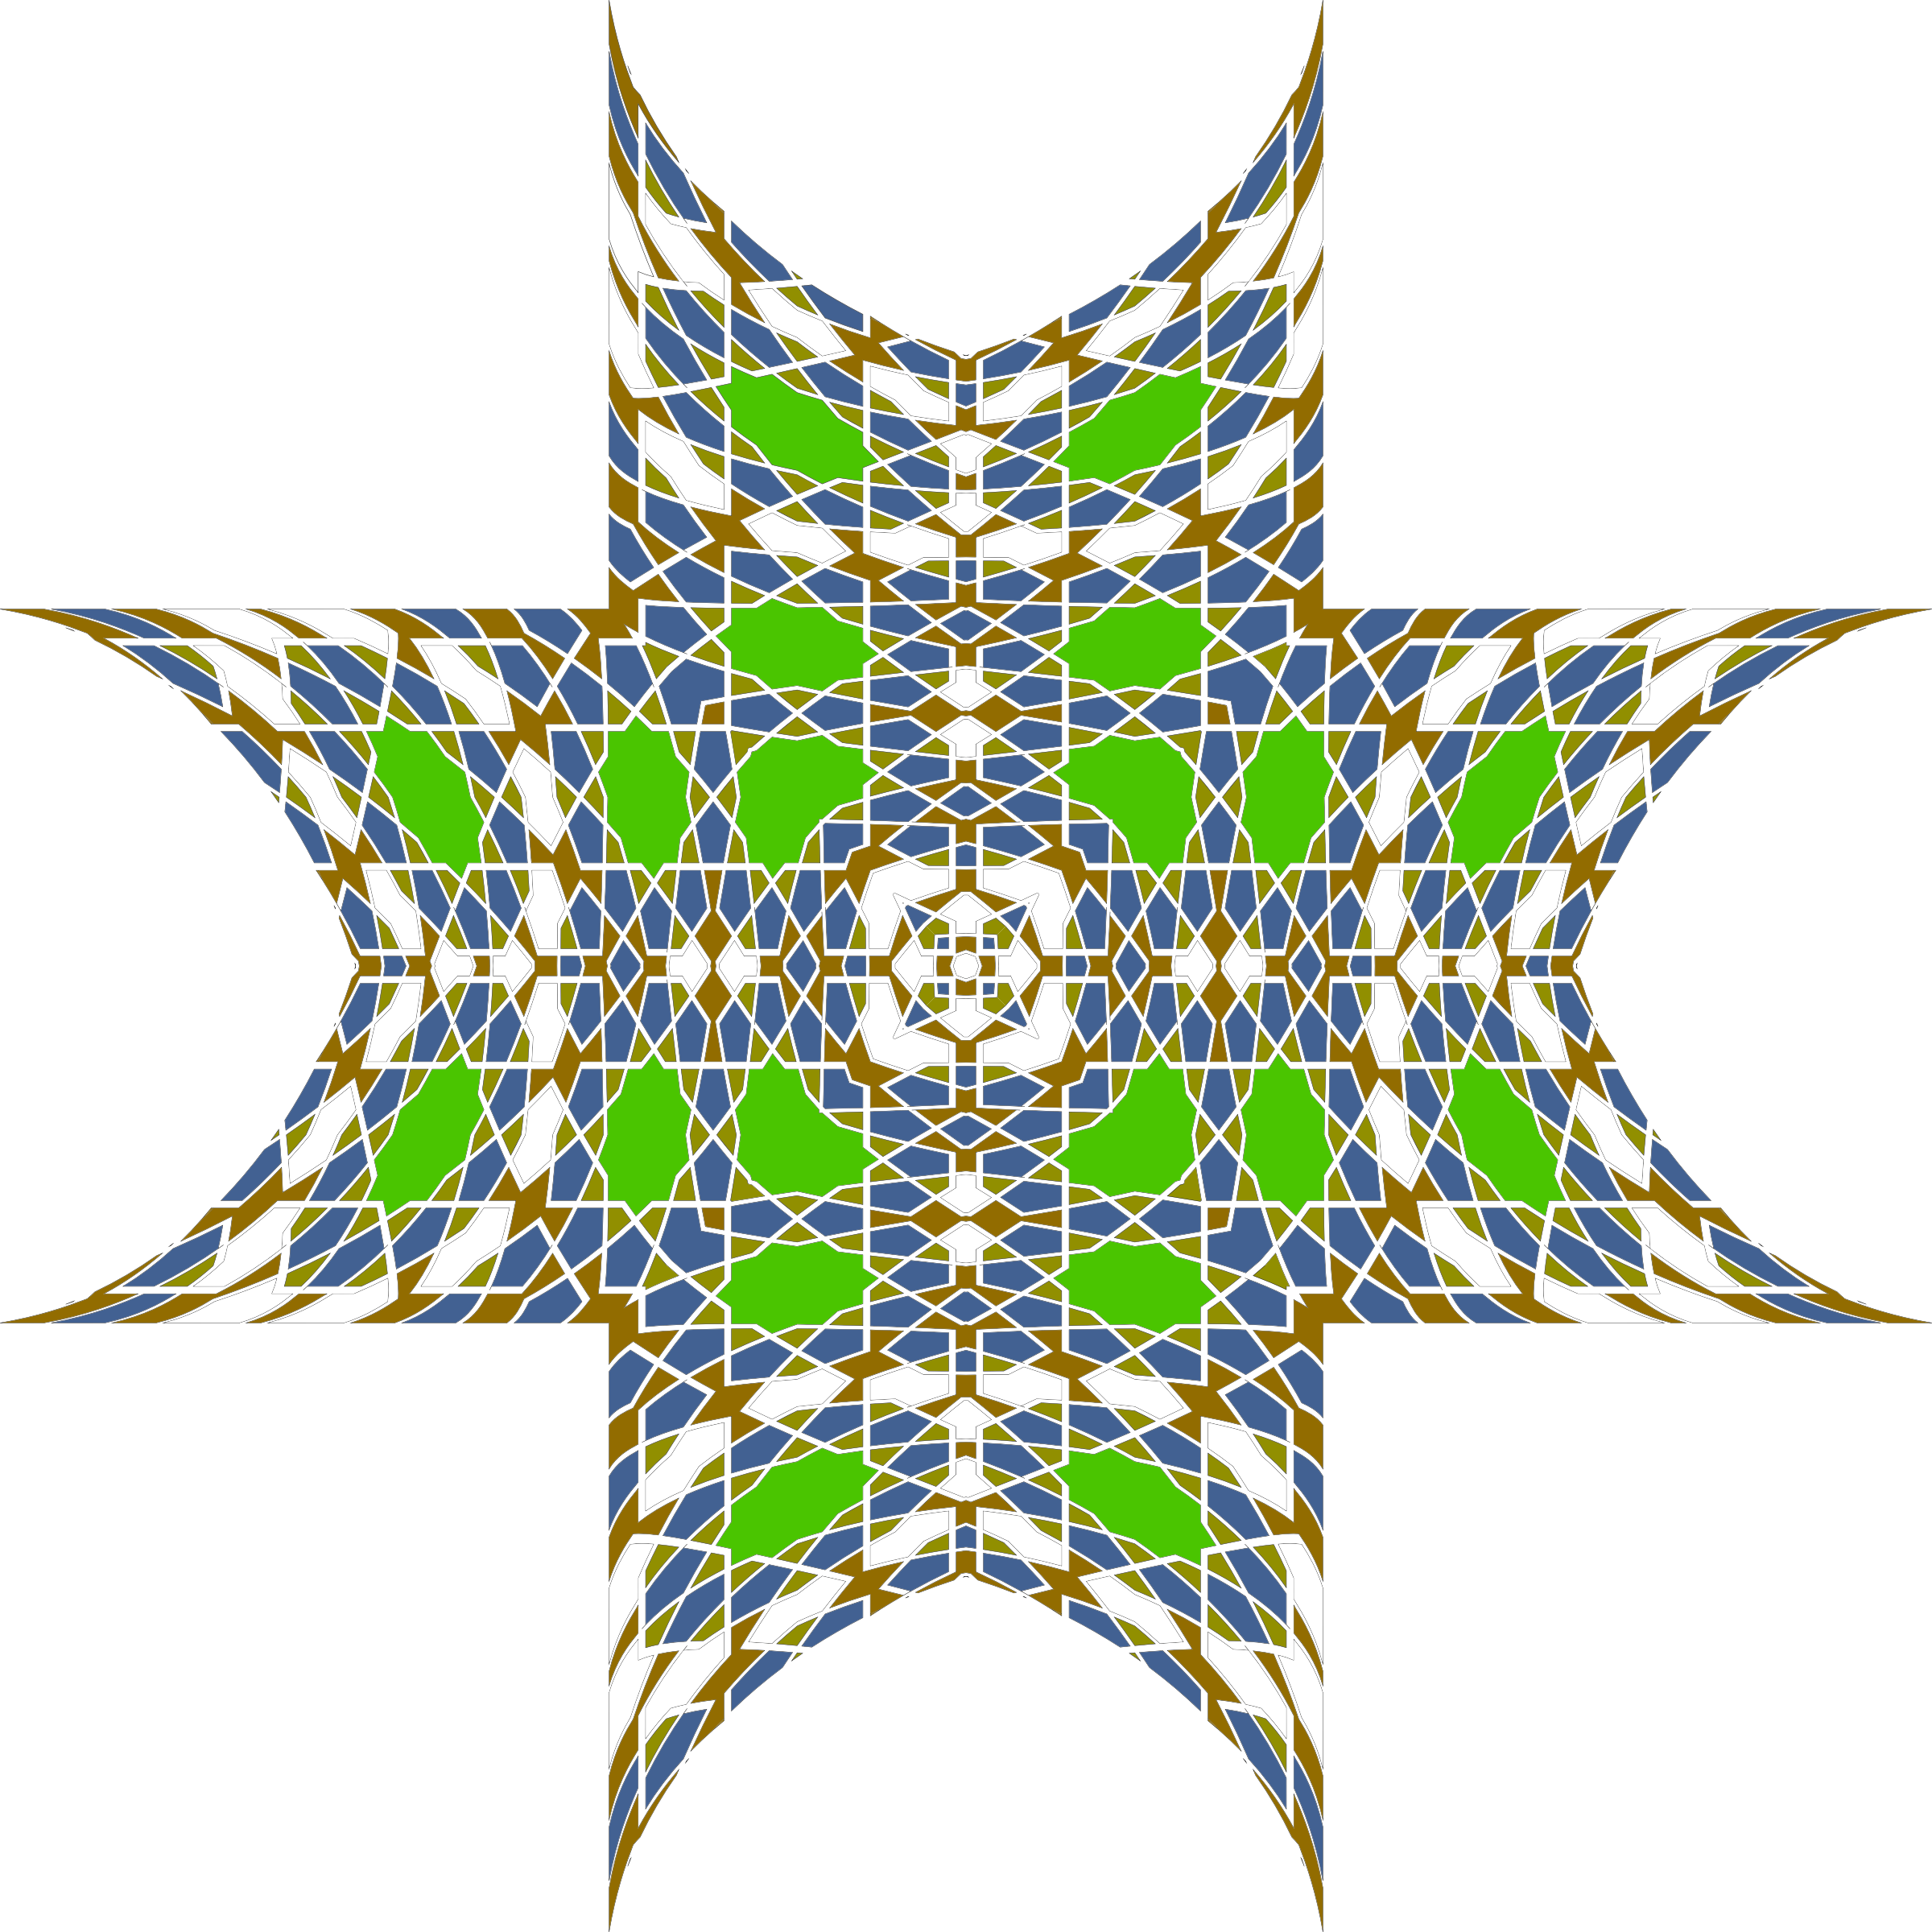 Islamic Geometric Tile 4 by GDJ